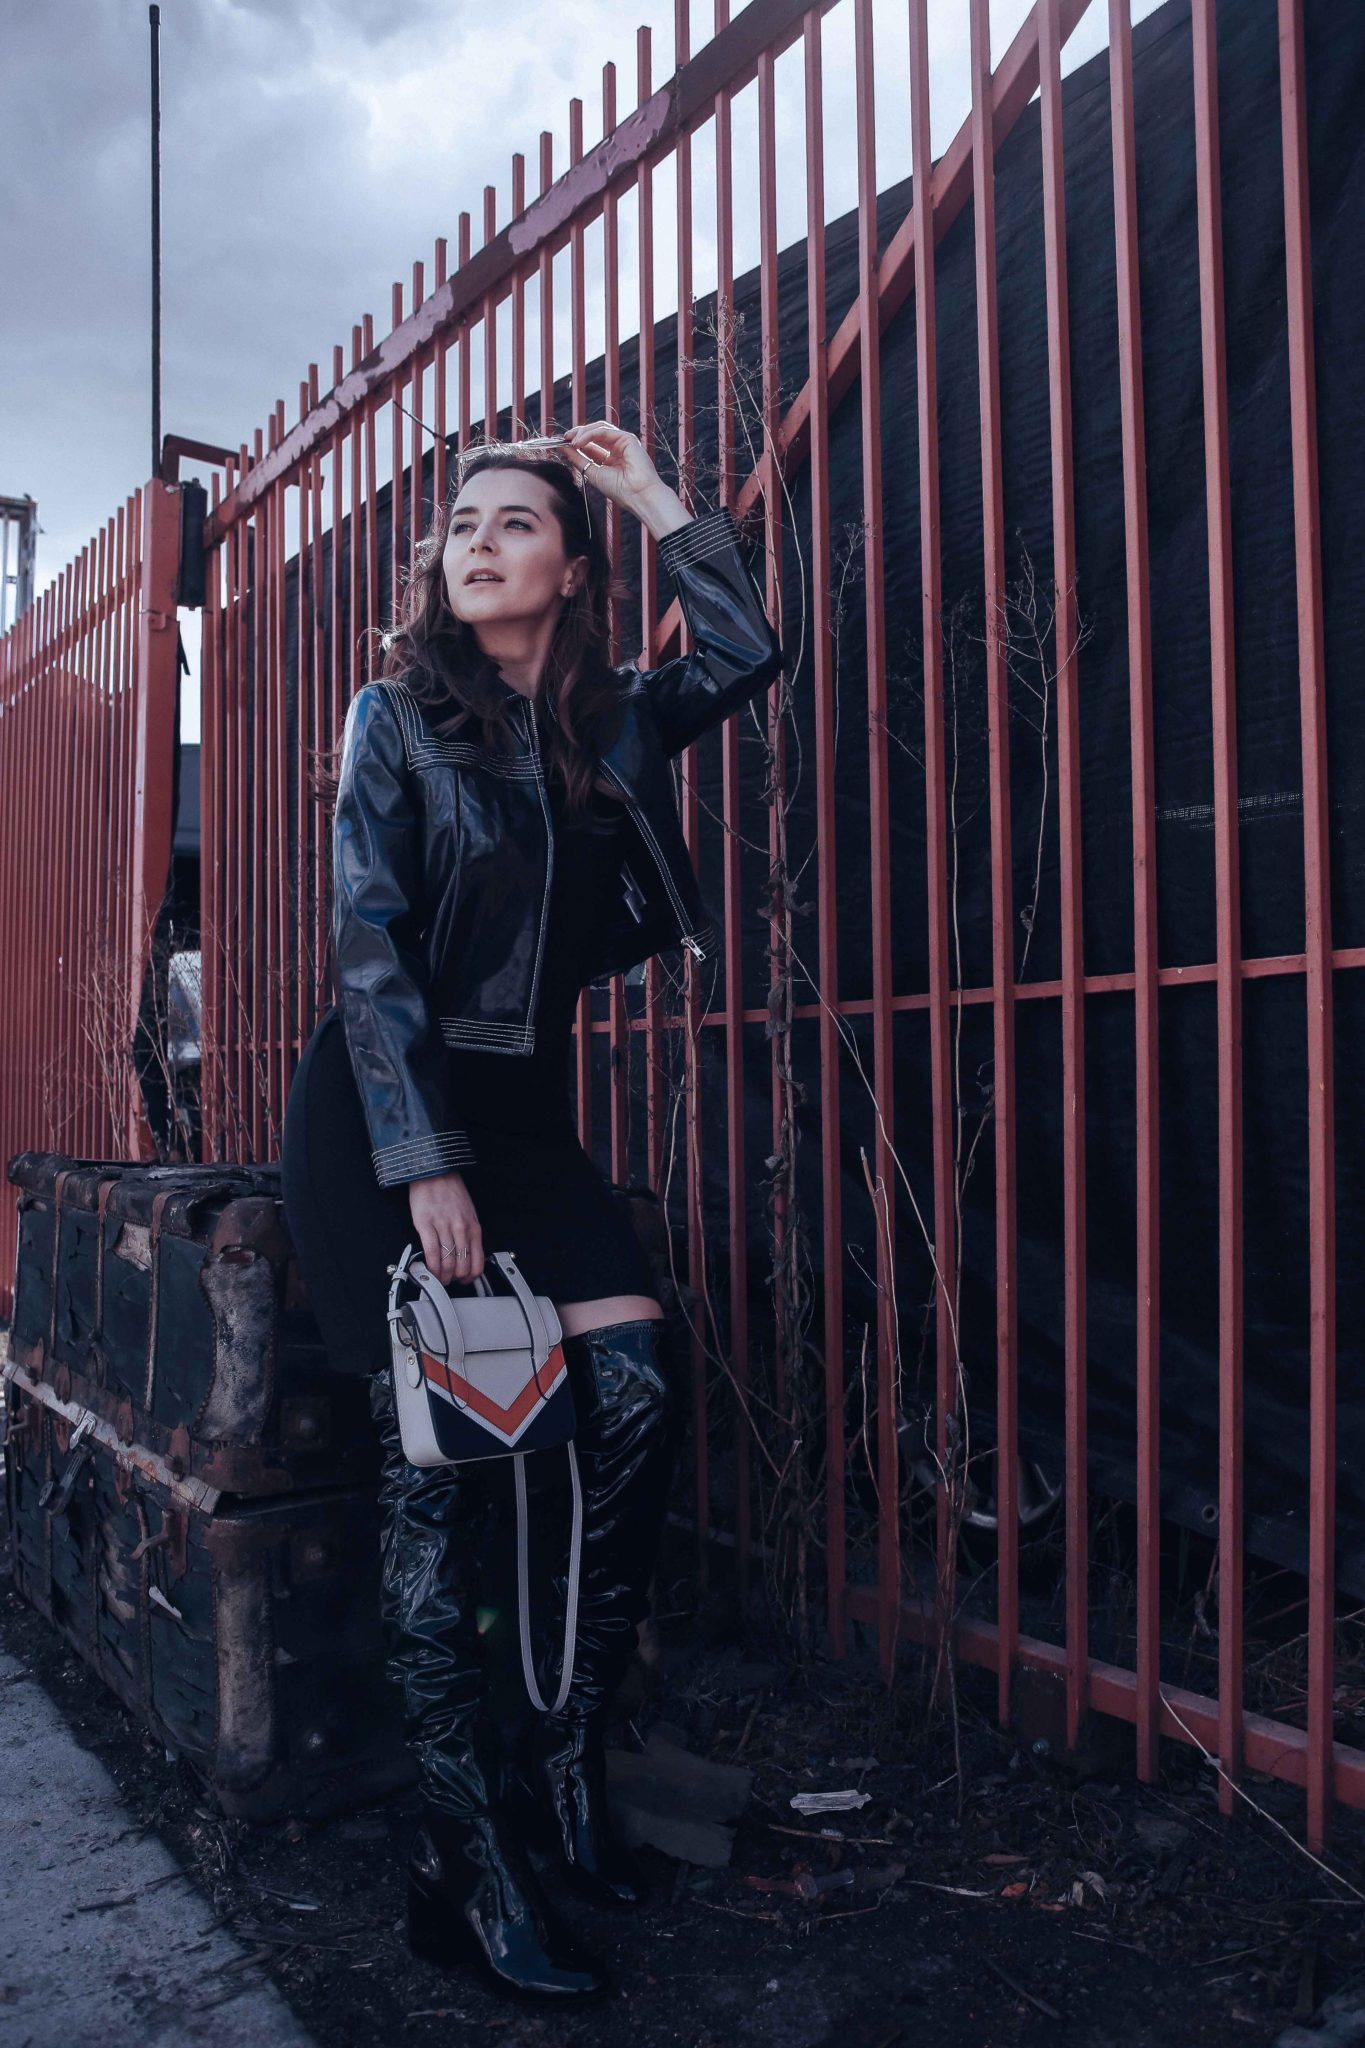 How to style Patent leather jacket and Patent leather boots - How to style the Vinyl trend. More on Houseofcomil.com - Blue Leather jacket by Ganni on If Chic, Nano MC Chevron Bag by Strathberry. Styled by Julia Comil French Fashion Blogger in Los Angeles